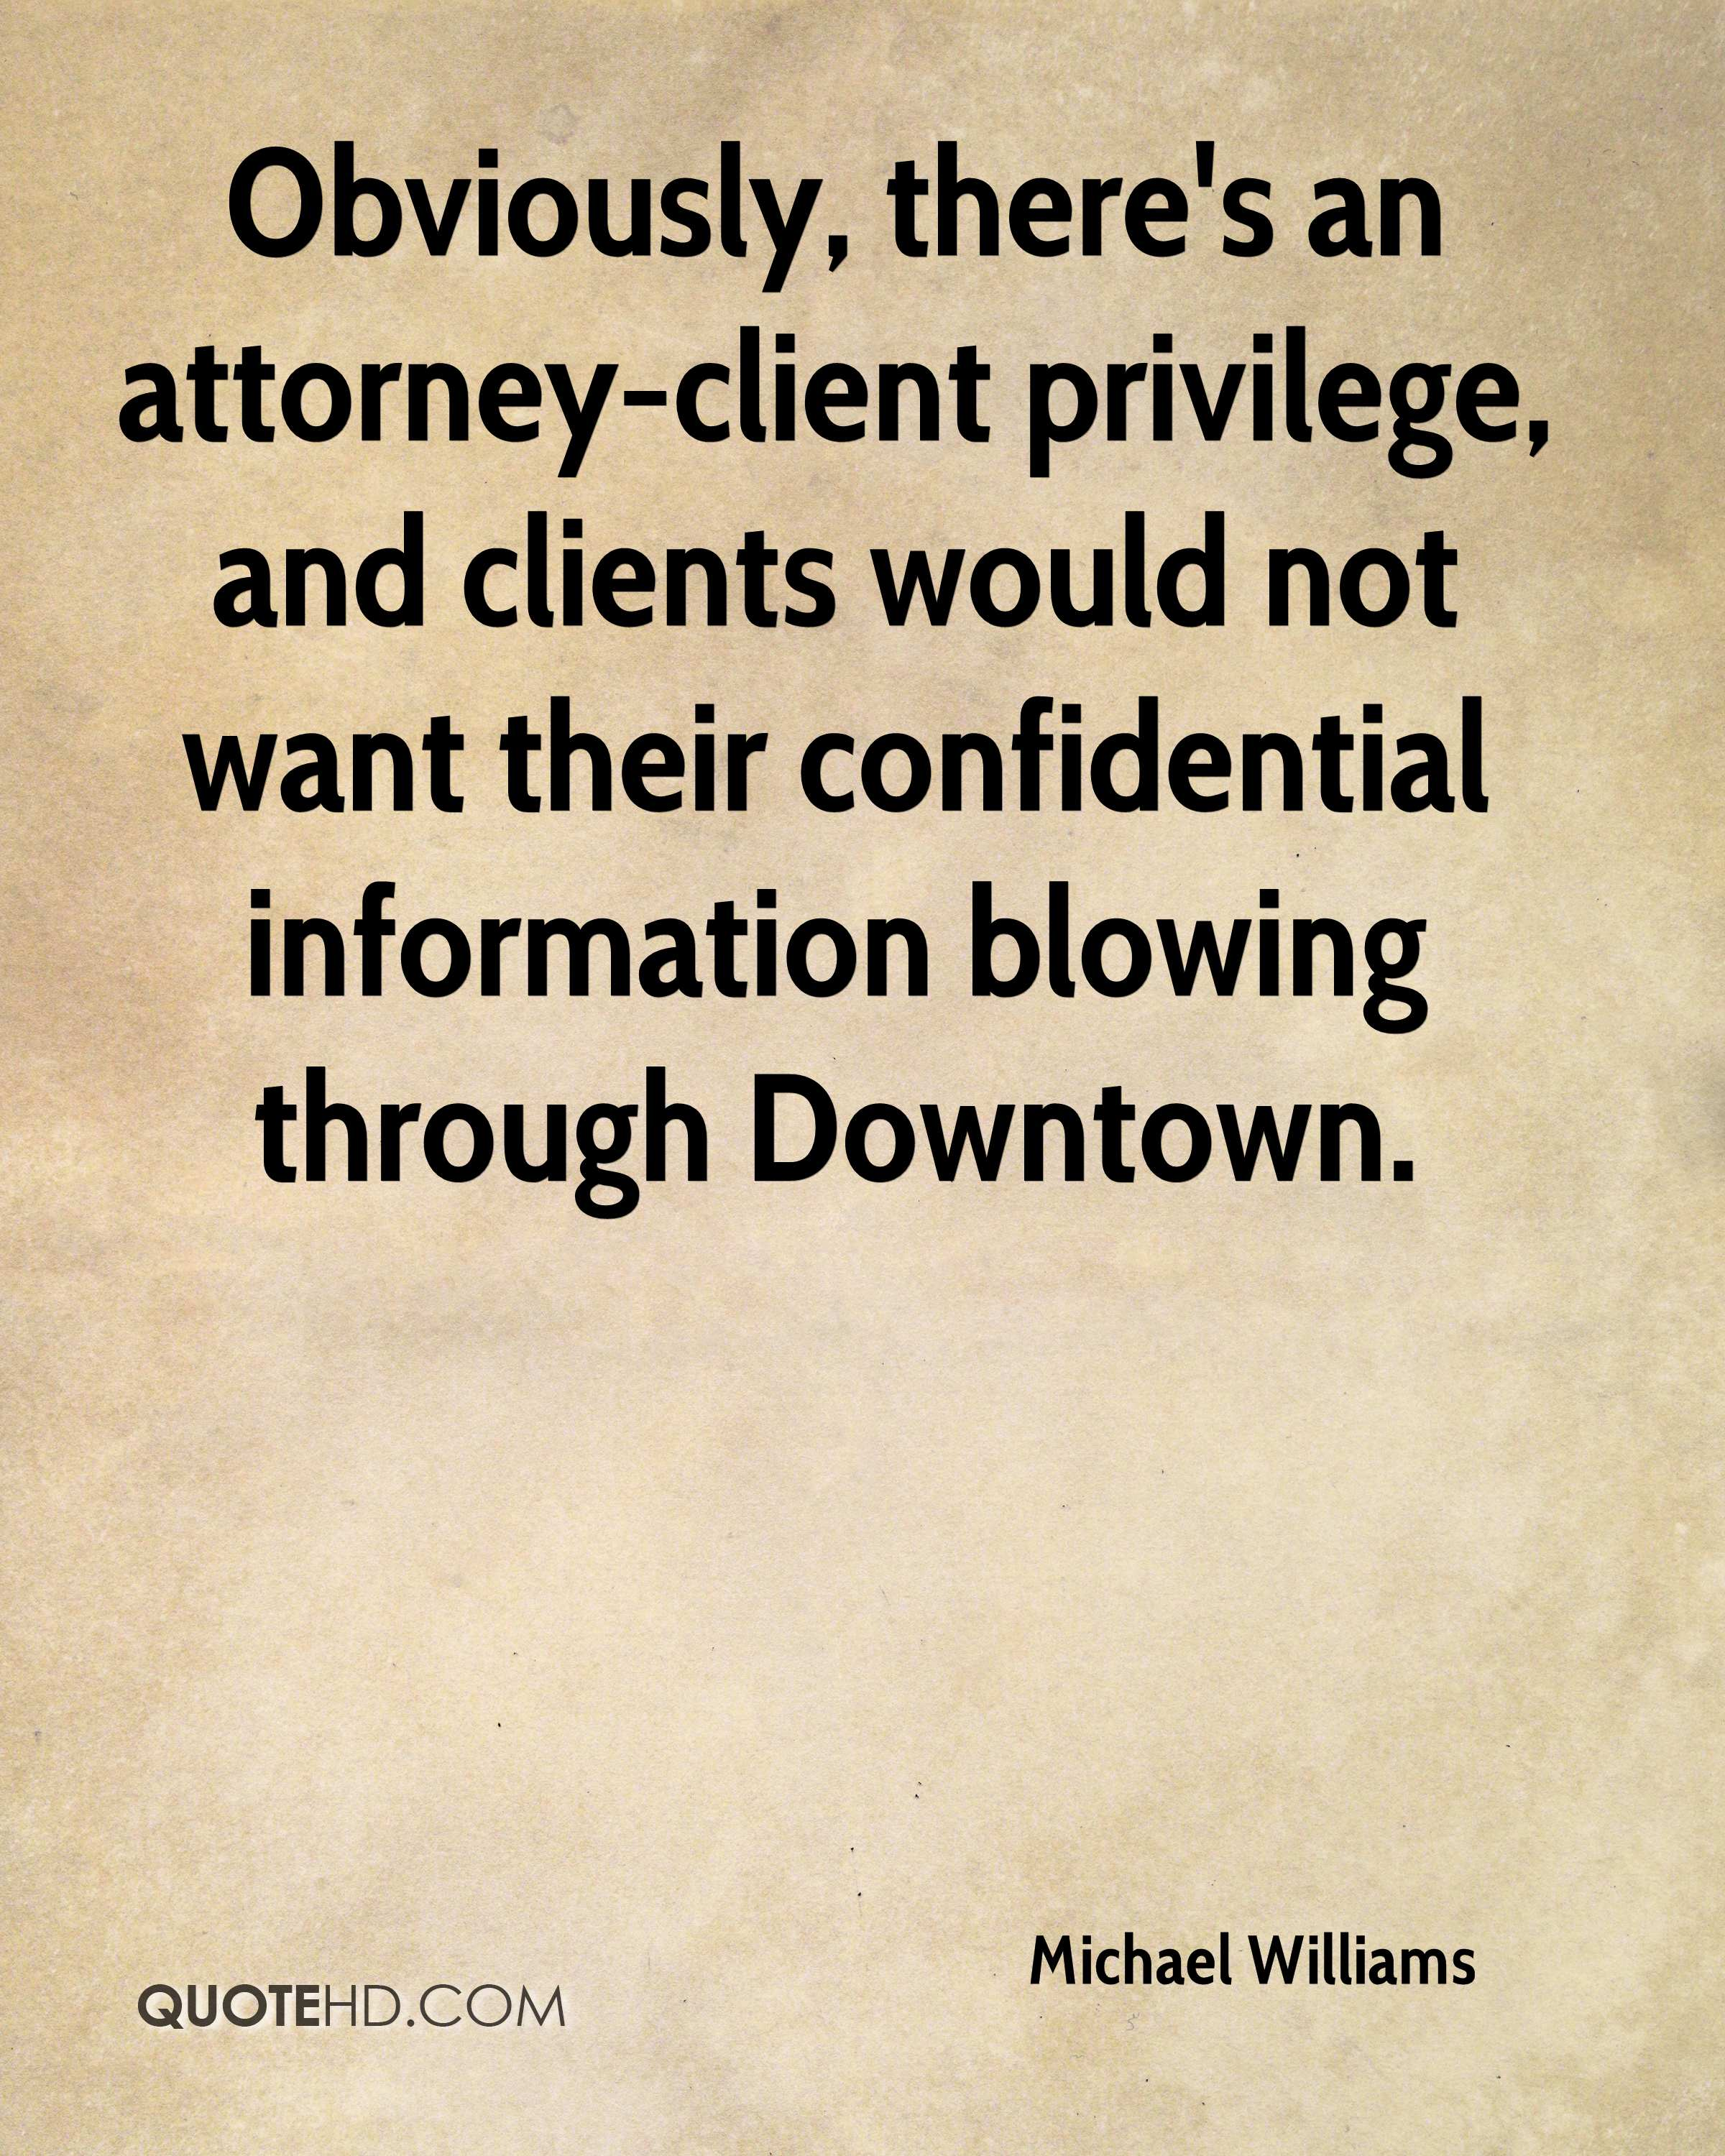 Obviously, there's an attorney-client privilege, and clients would not want their confidential information blowing through Downtown.